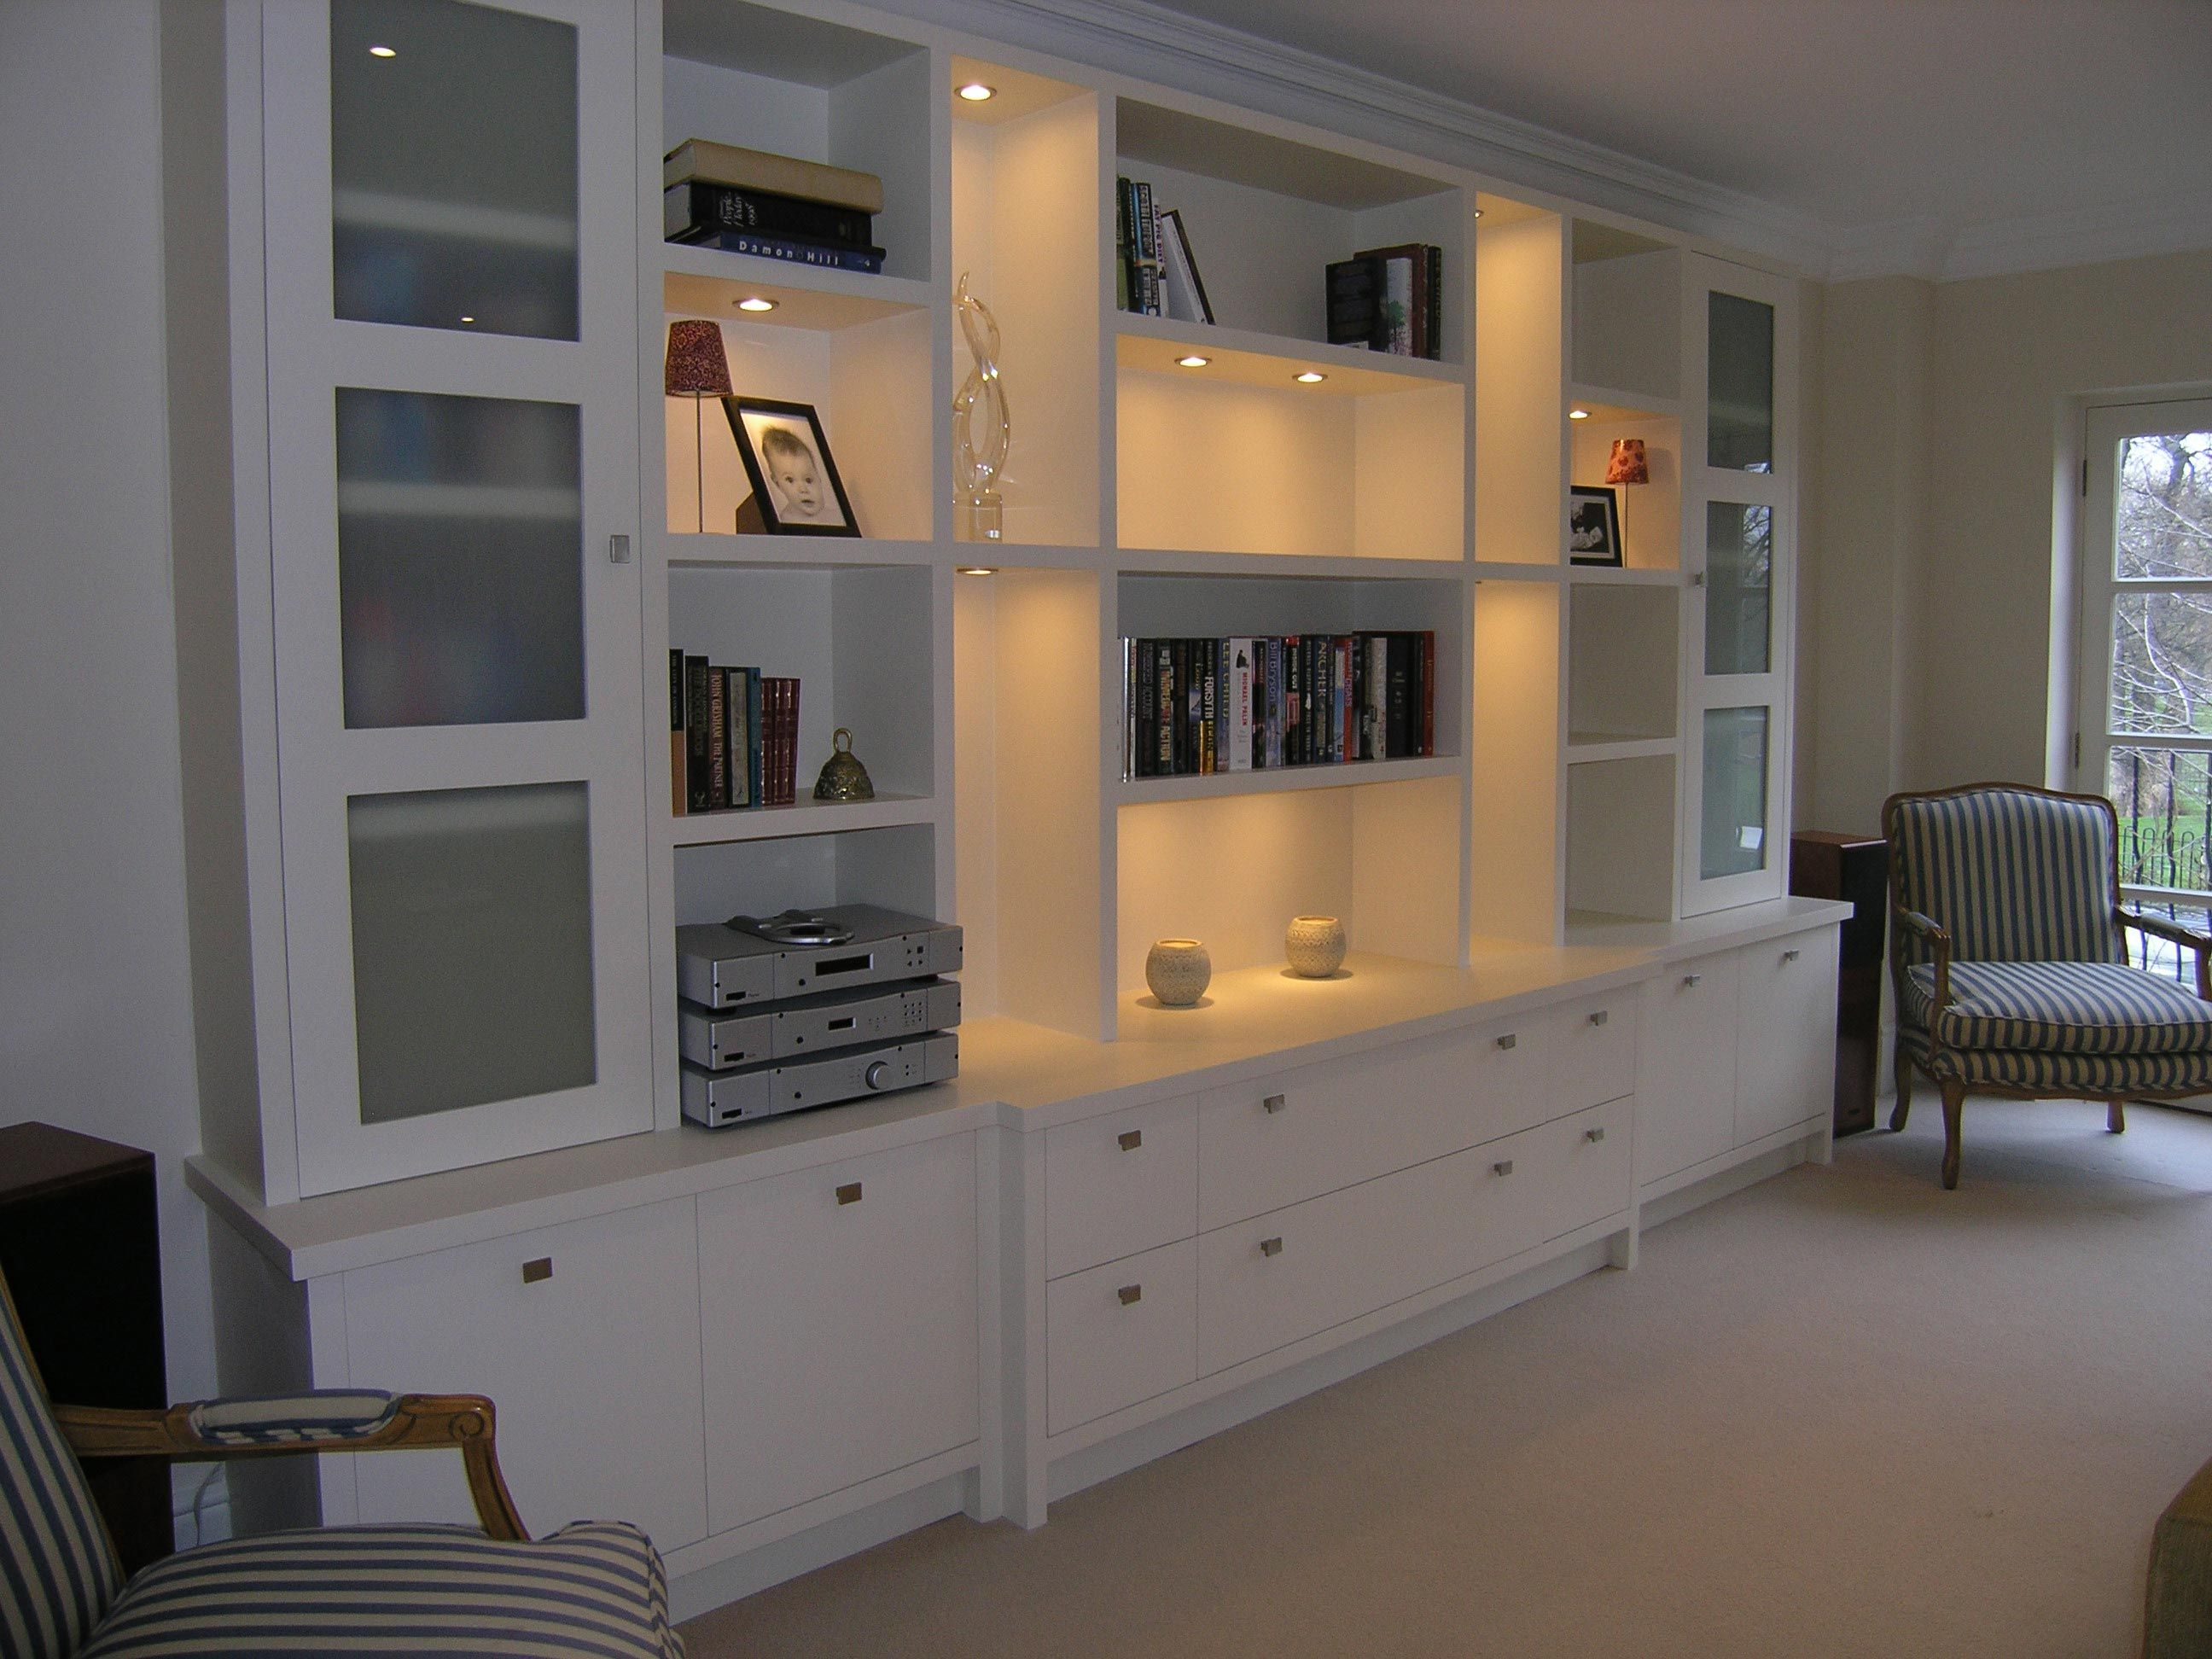 Wohnzimmer Schrank Designs Verwenden Sie Eine Anweisung Stuhl Zu Erstellen Die Eine D Storage Furniture Living Room Living Room Shelves Living Room Cabinets